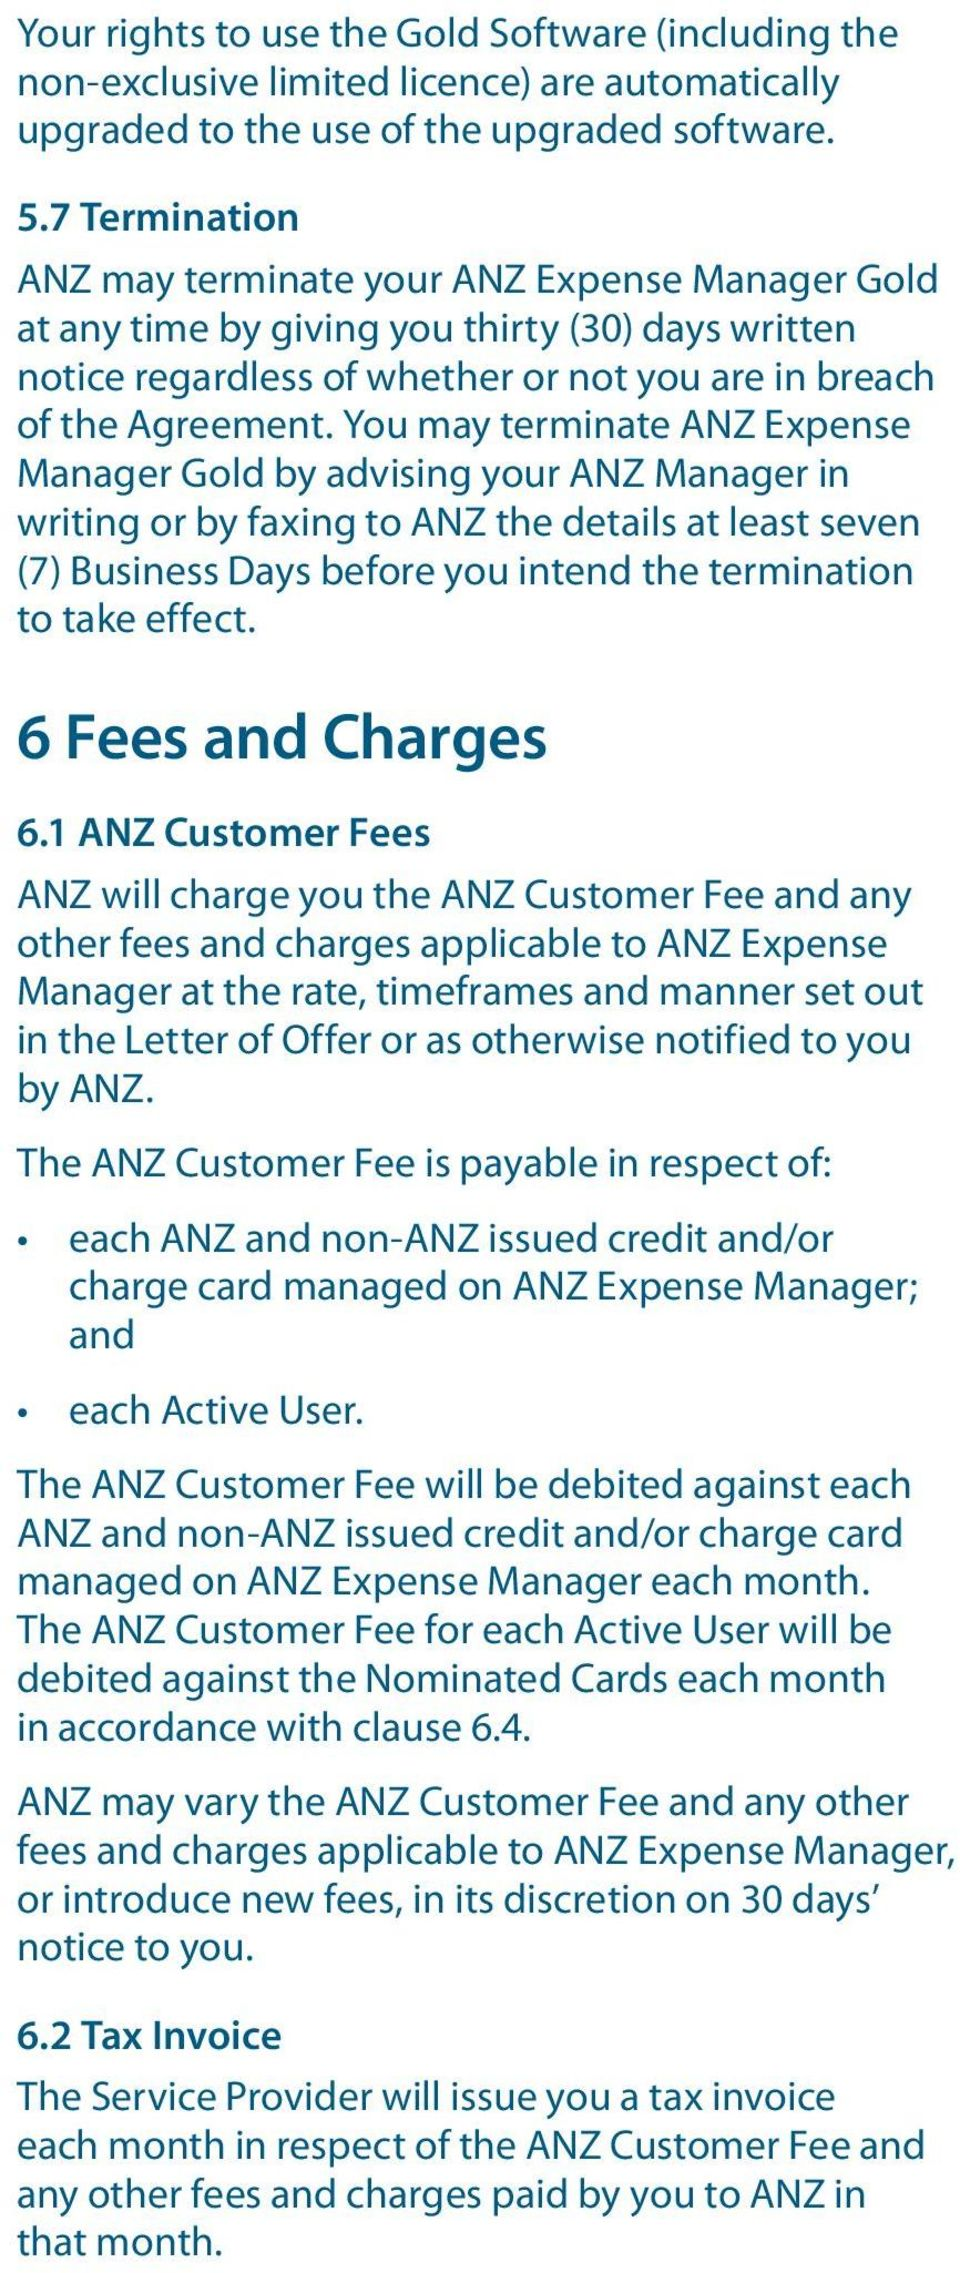 You may terminate ANZ Expense Manager Gold by advising your ANZ Manager in writing or by faxing to ANZ the details at least seven (7) Business Days before you intend the termination to take effect.